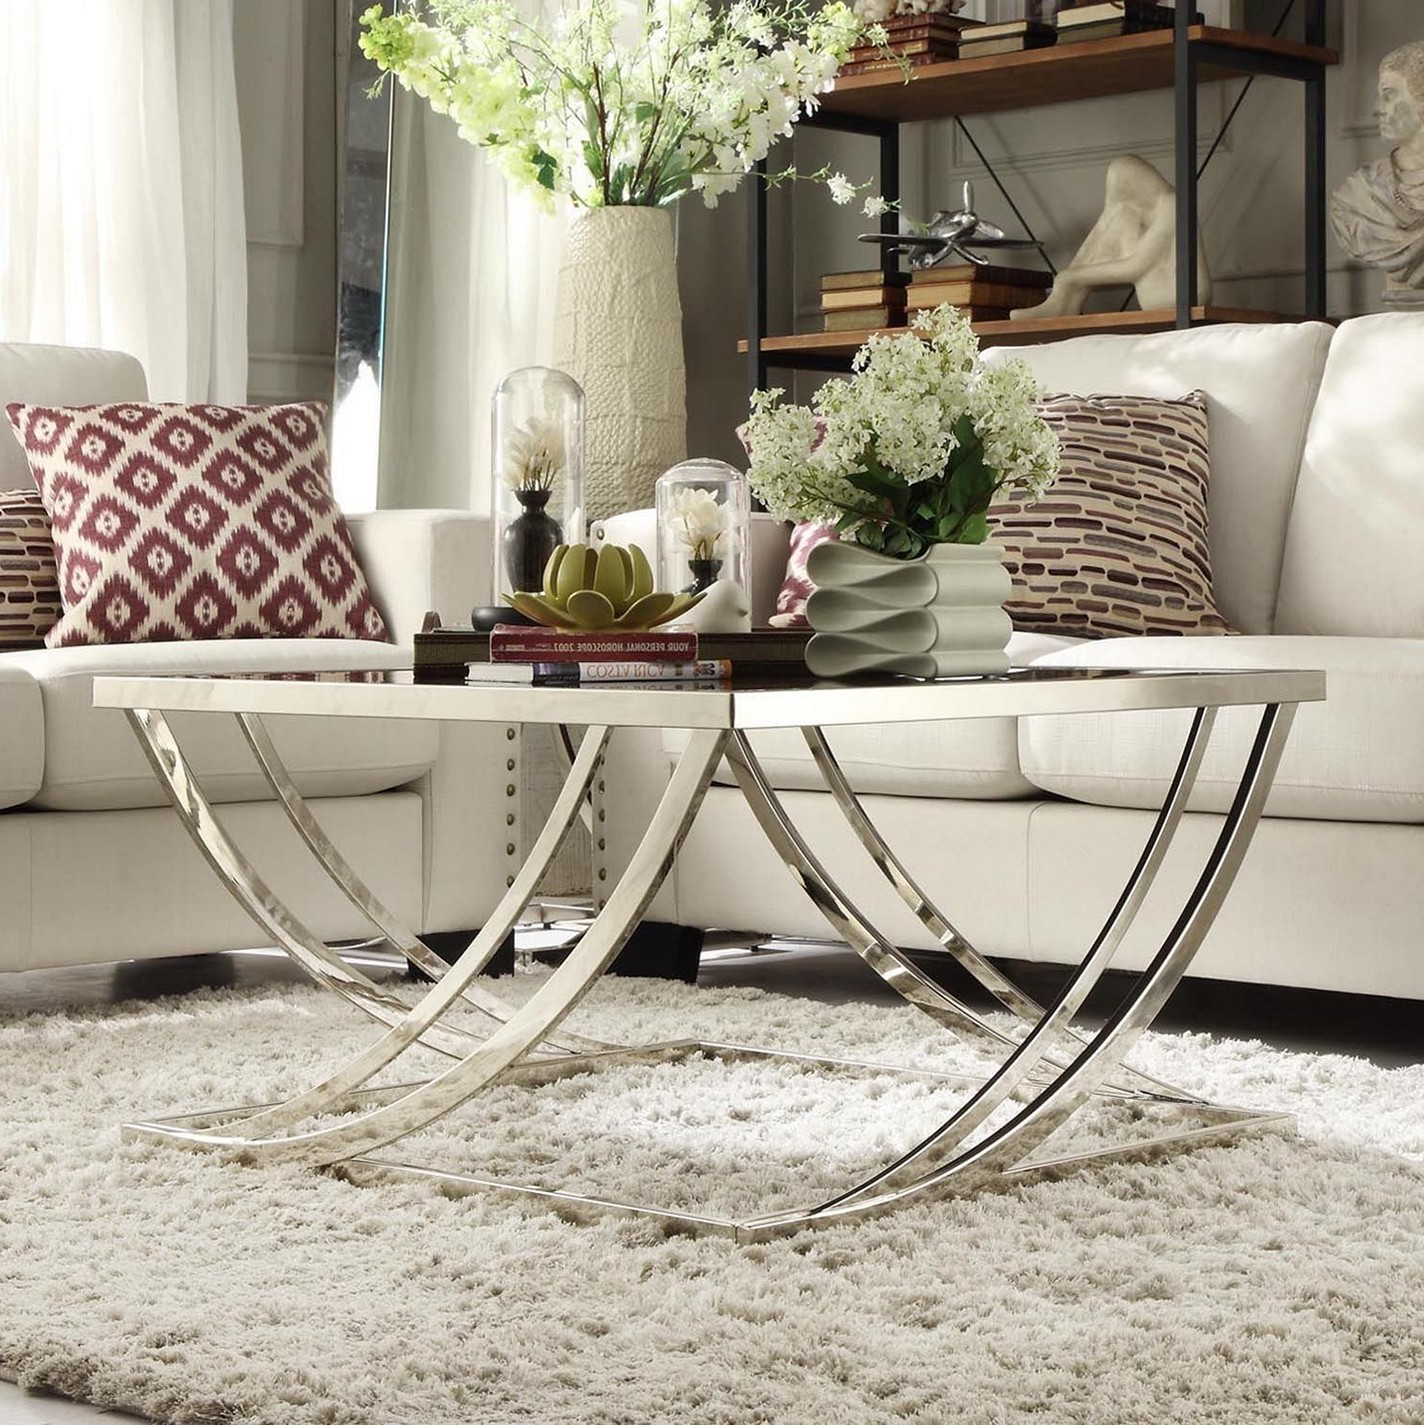 Couchtisch Nickel Glas Brushed Nickel Coffee Table Legs | Roy Home Design